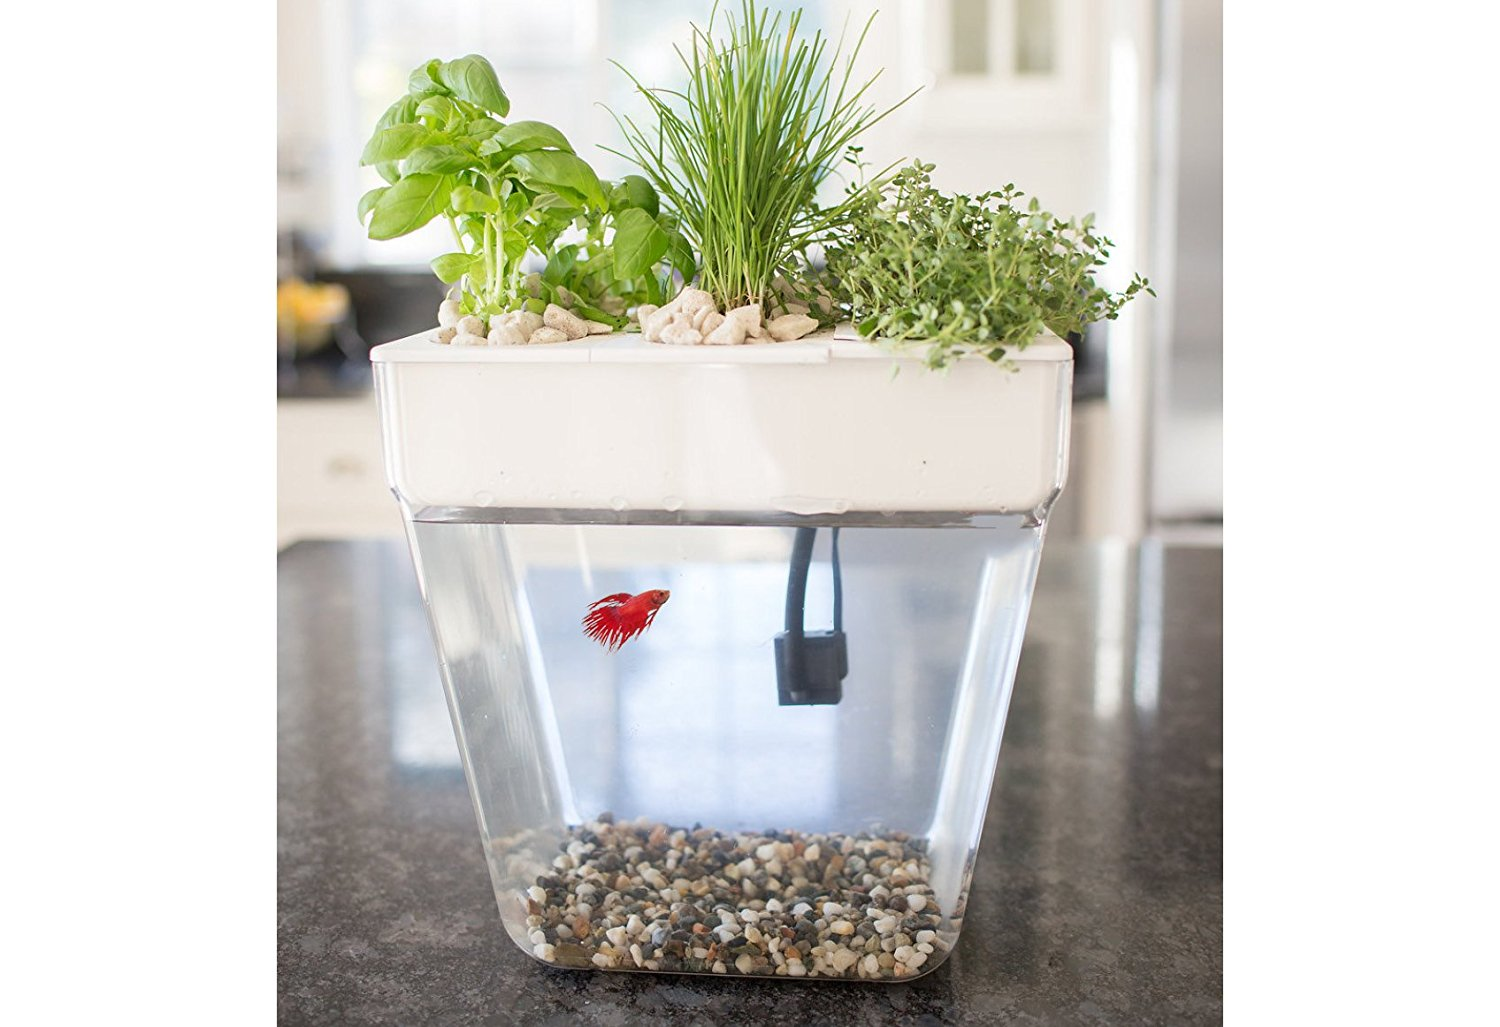 Best Aquaponic Betta Fish Tanks In 2018